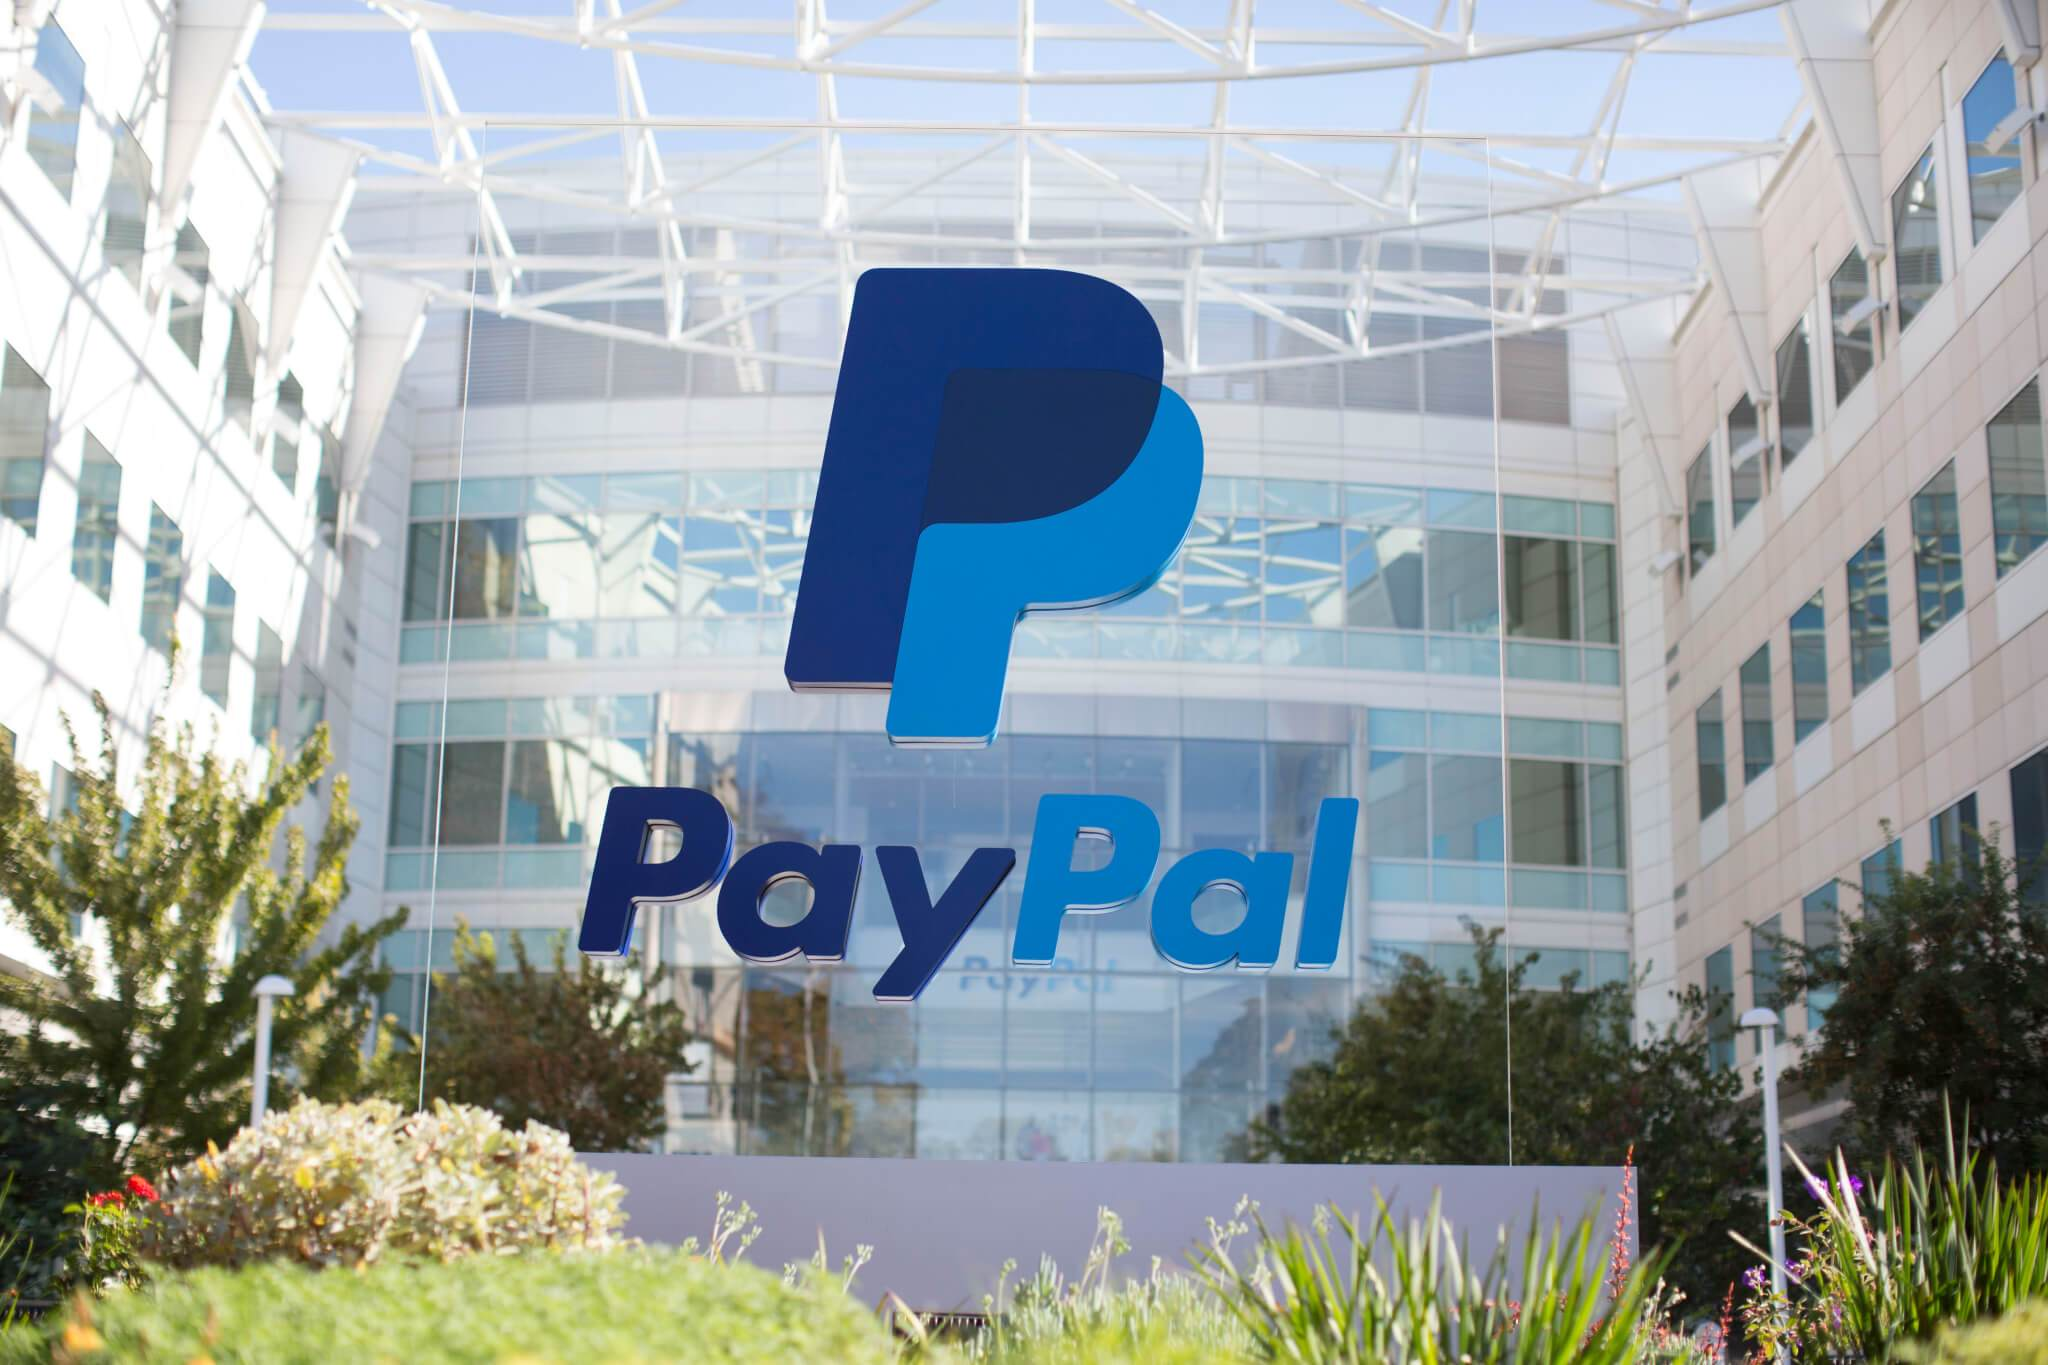 The Four things PayPal did that changed startups